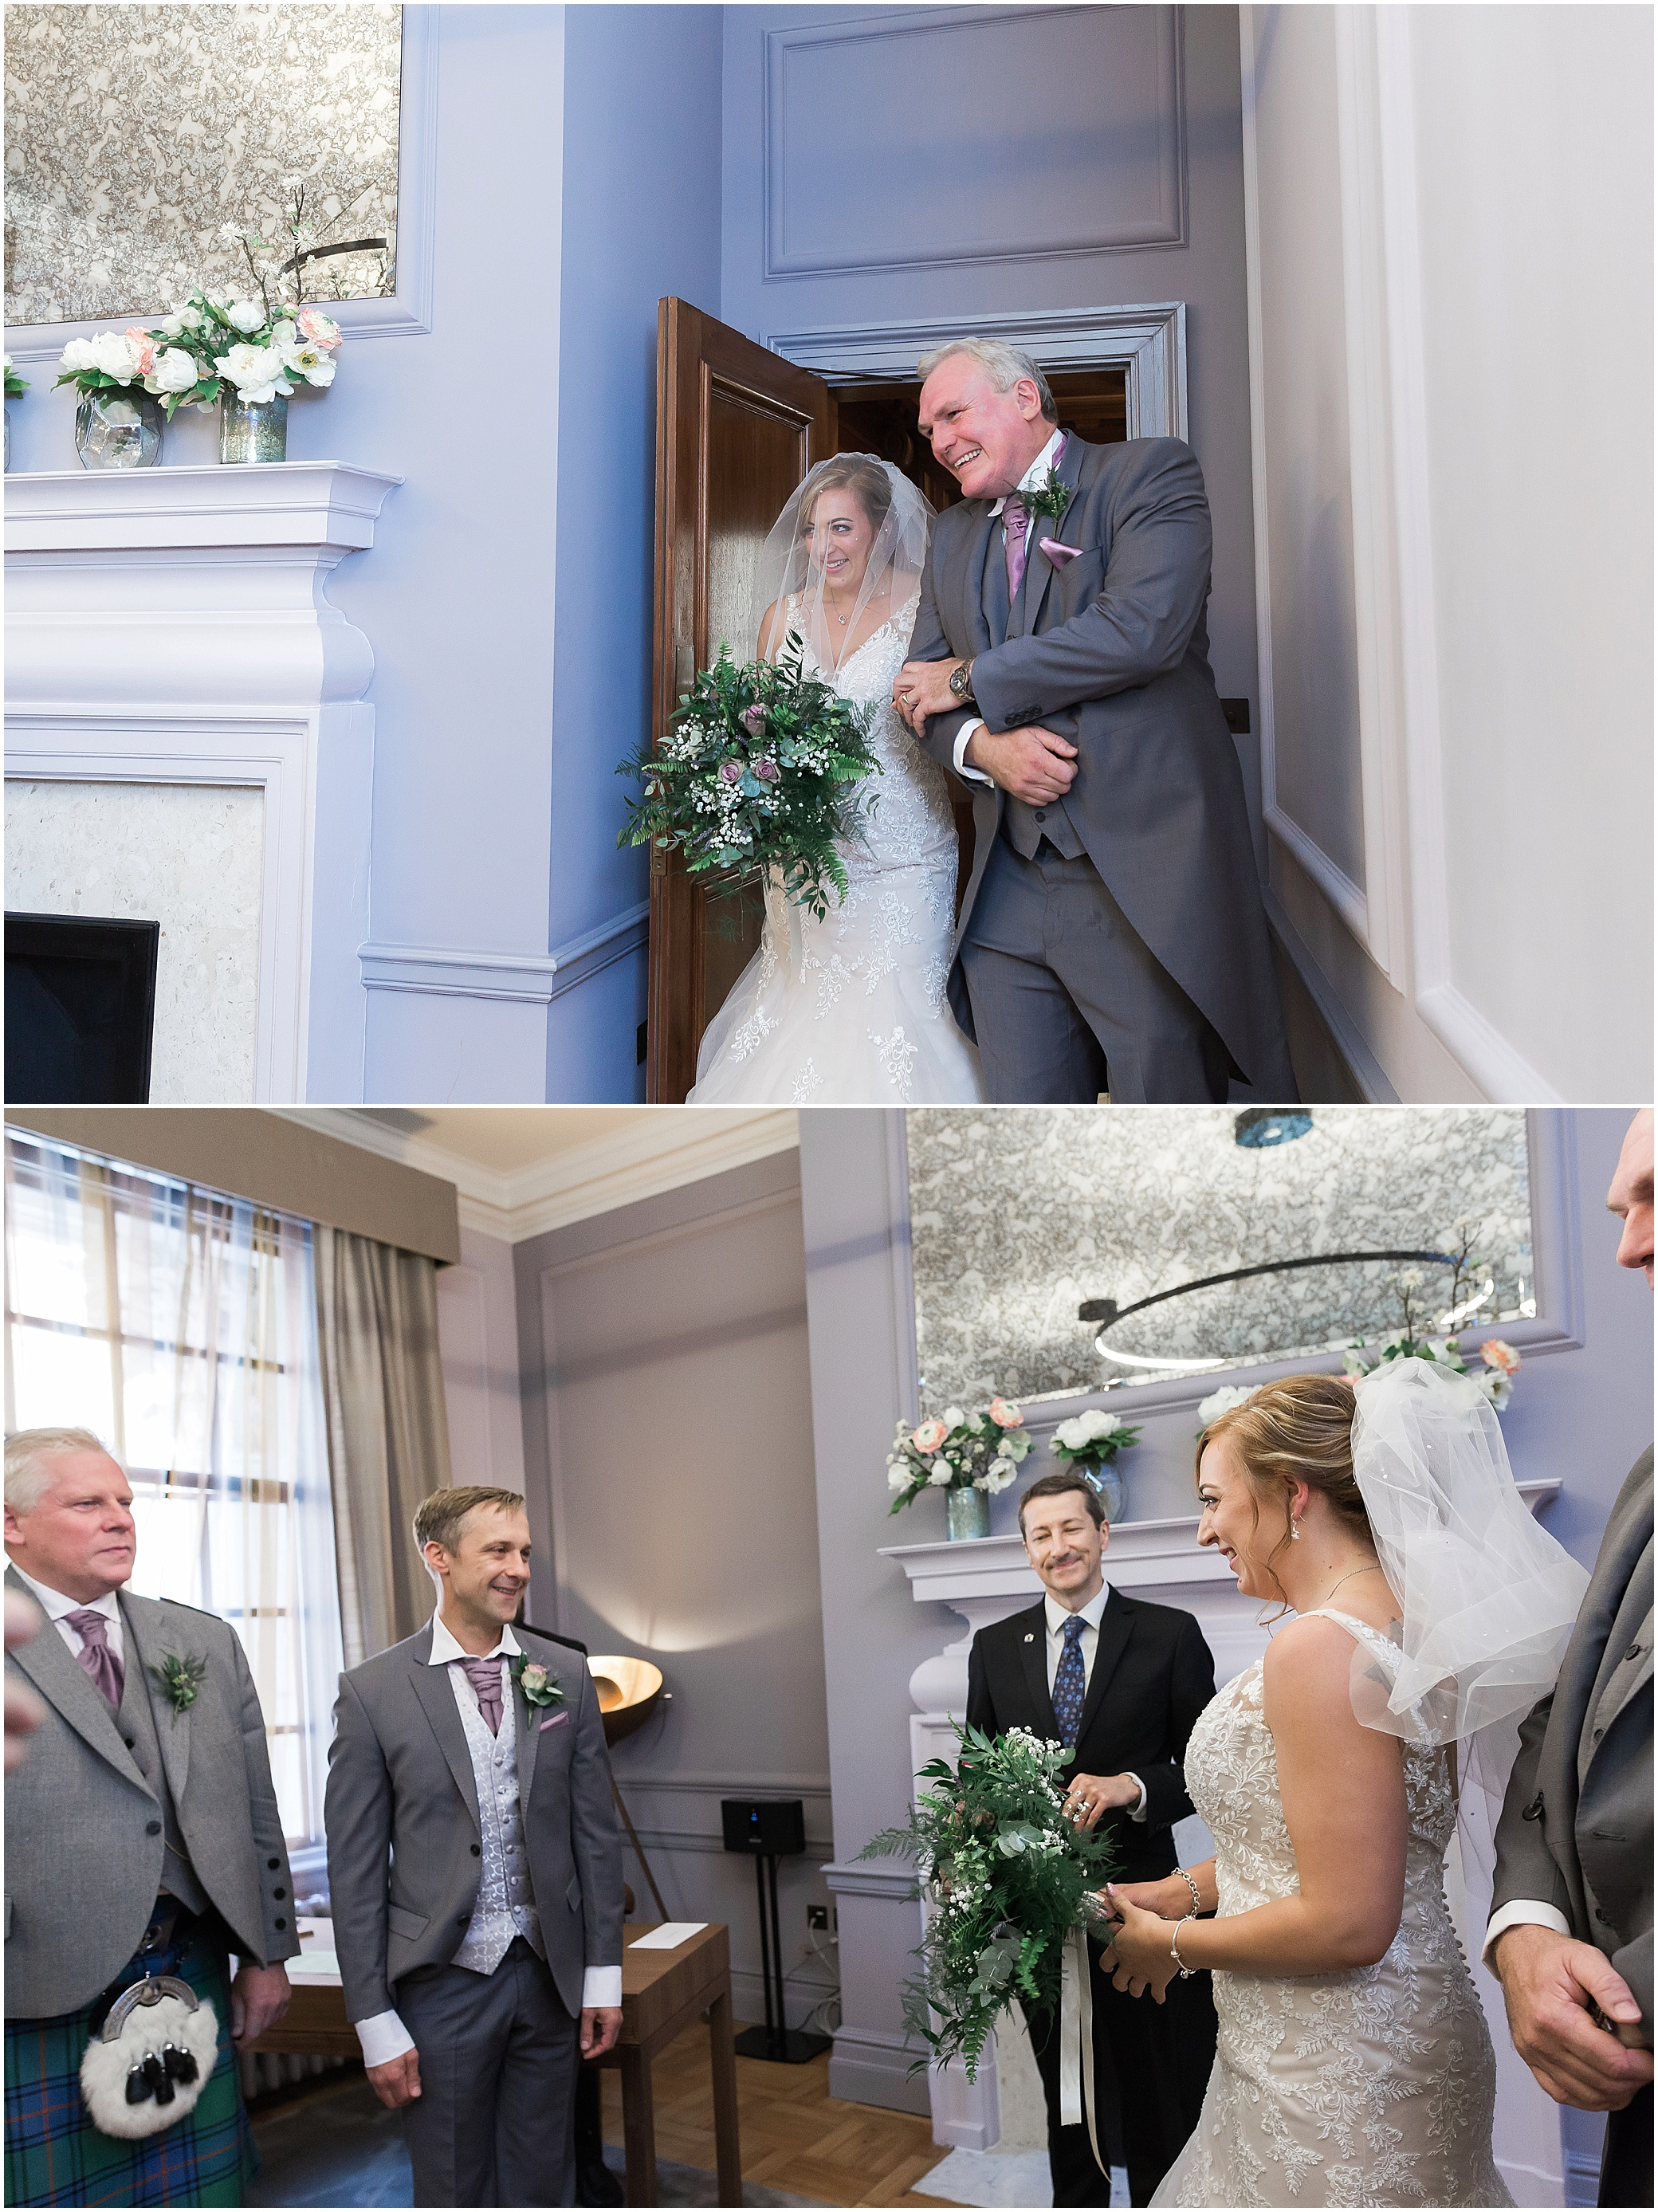 Bride entering ceremony room for her wedding at Marylebone town hall in London